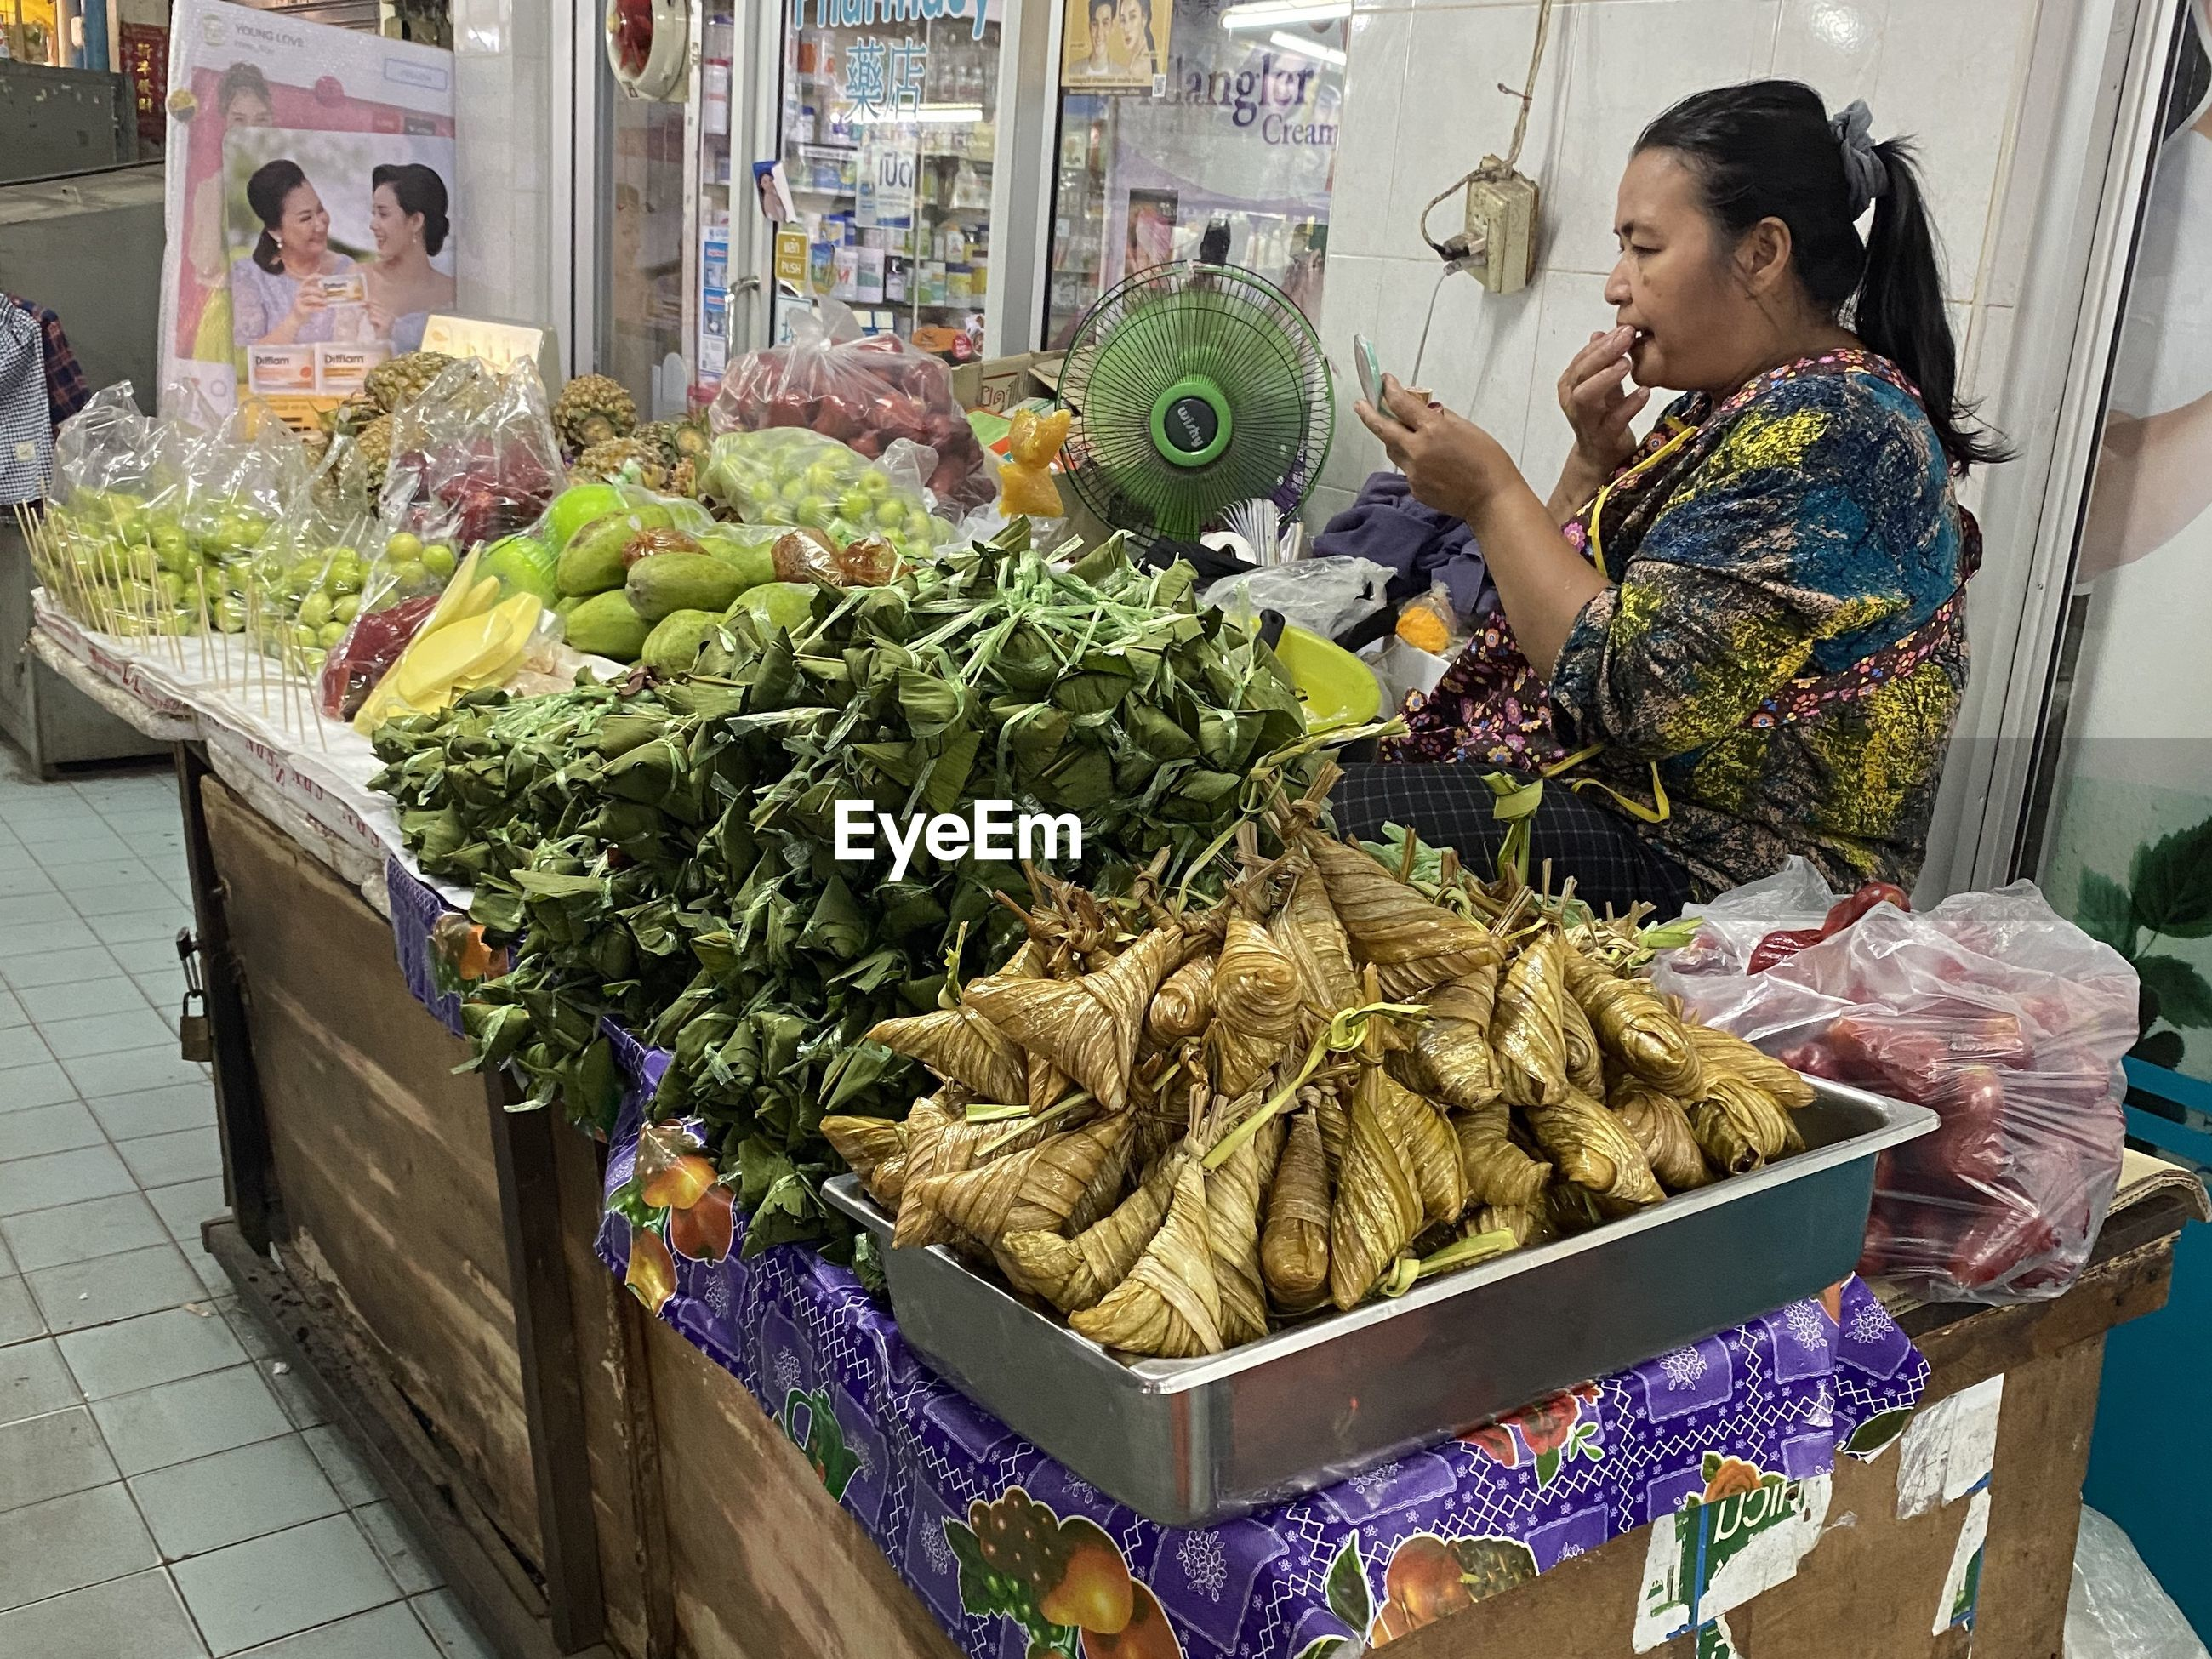 WOMAN IN MARKET STALL